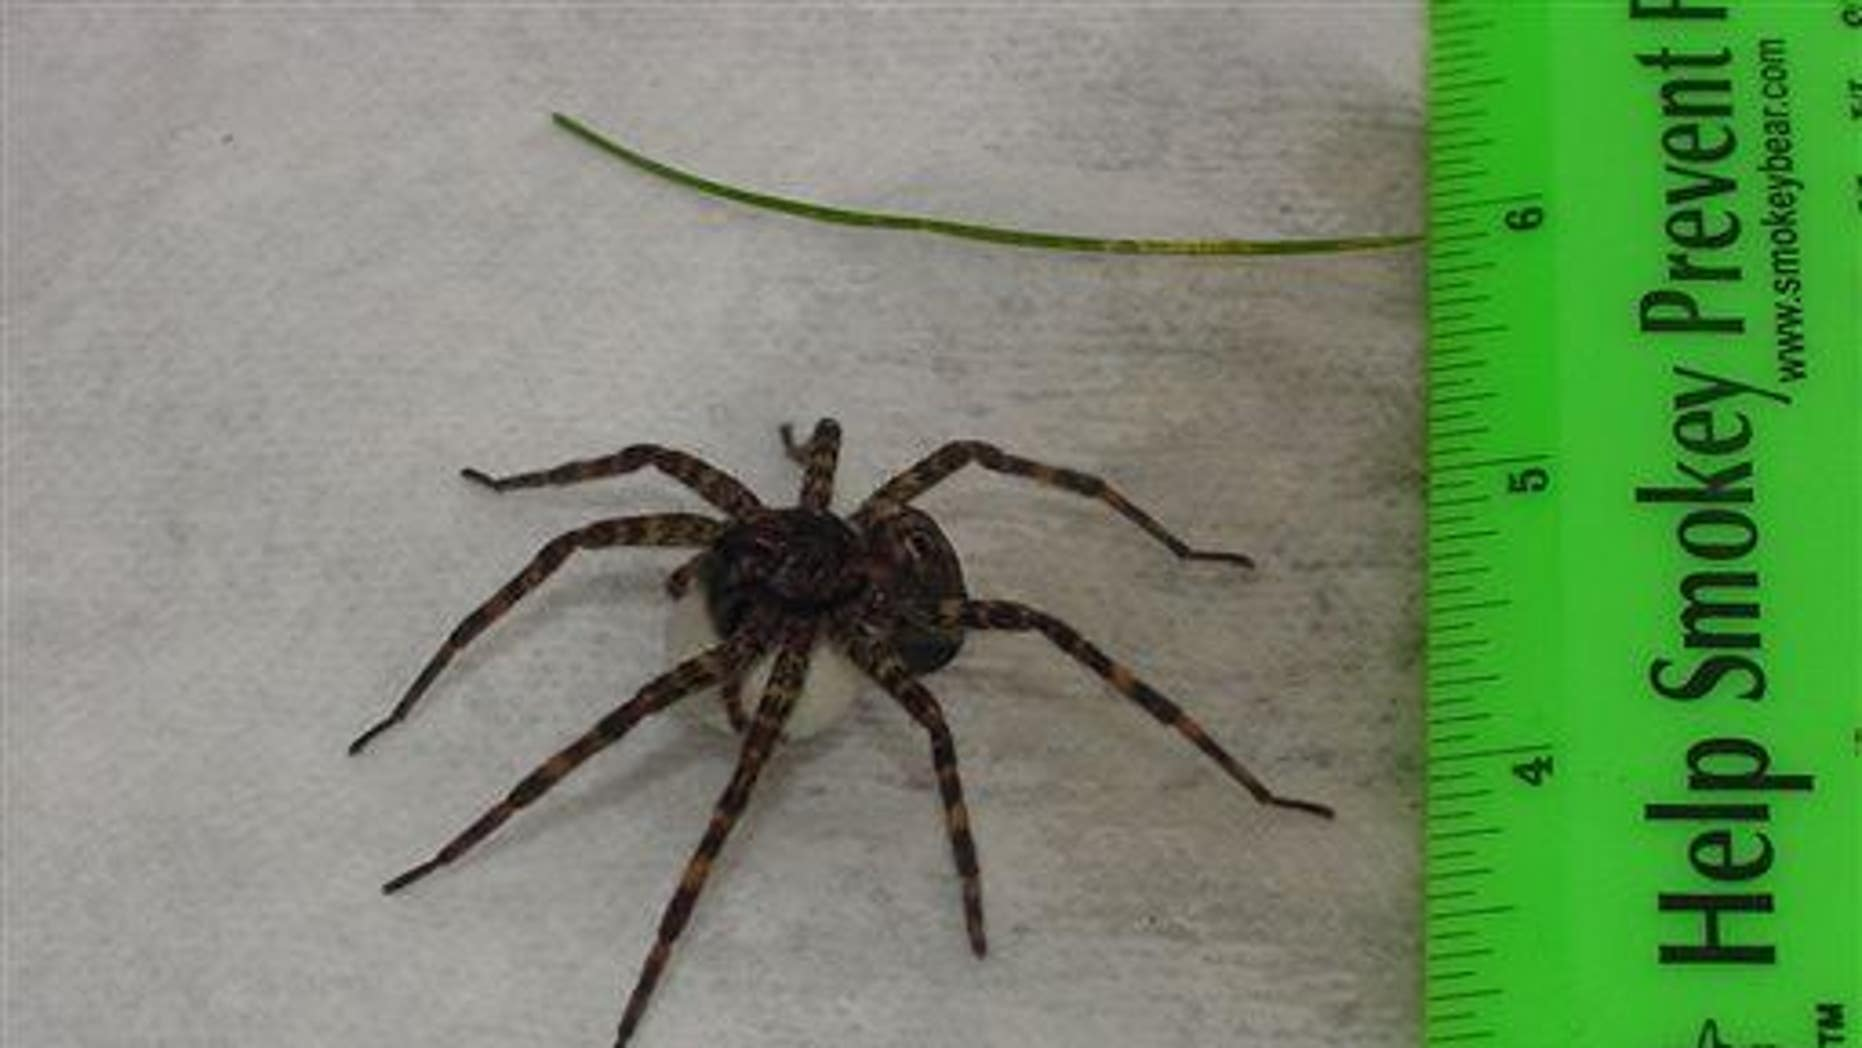 A man's fear of spiders was gone after surgery.